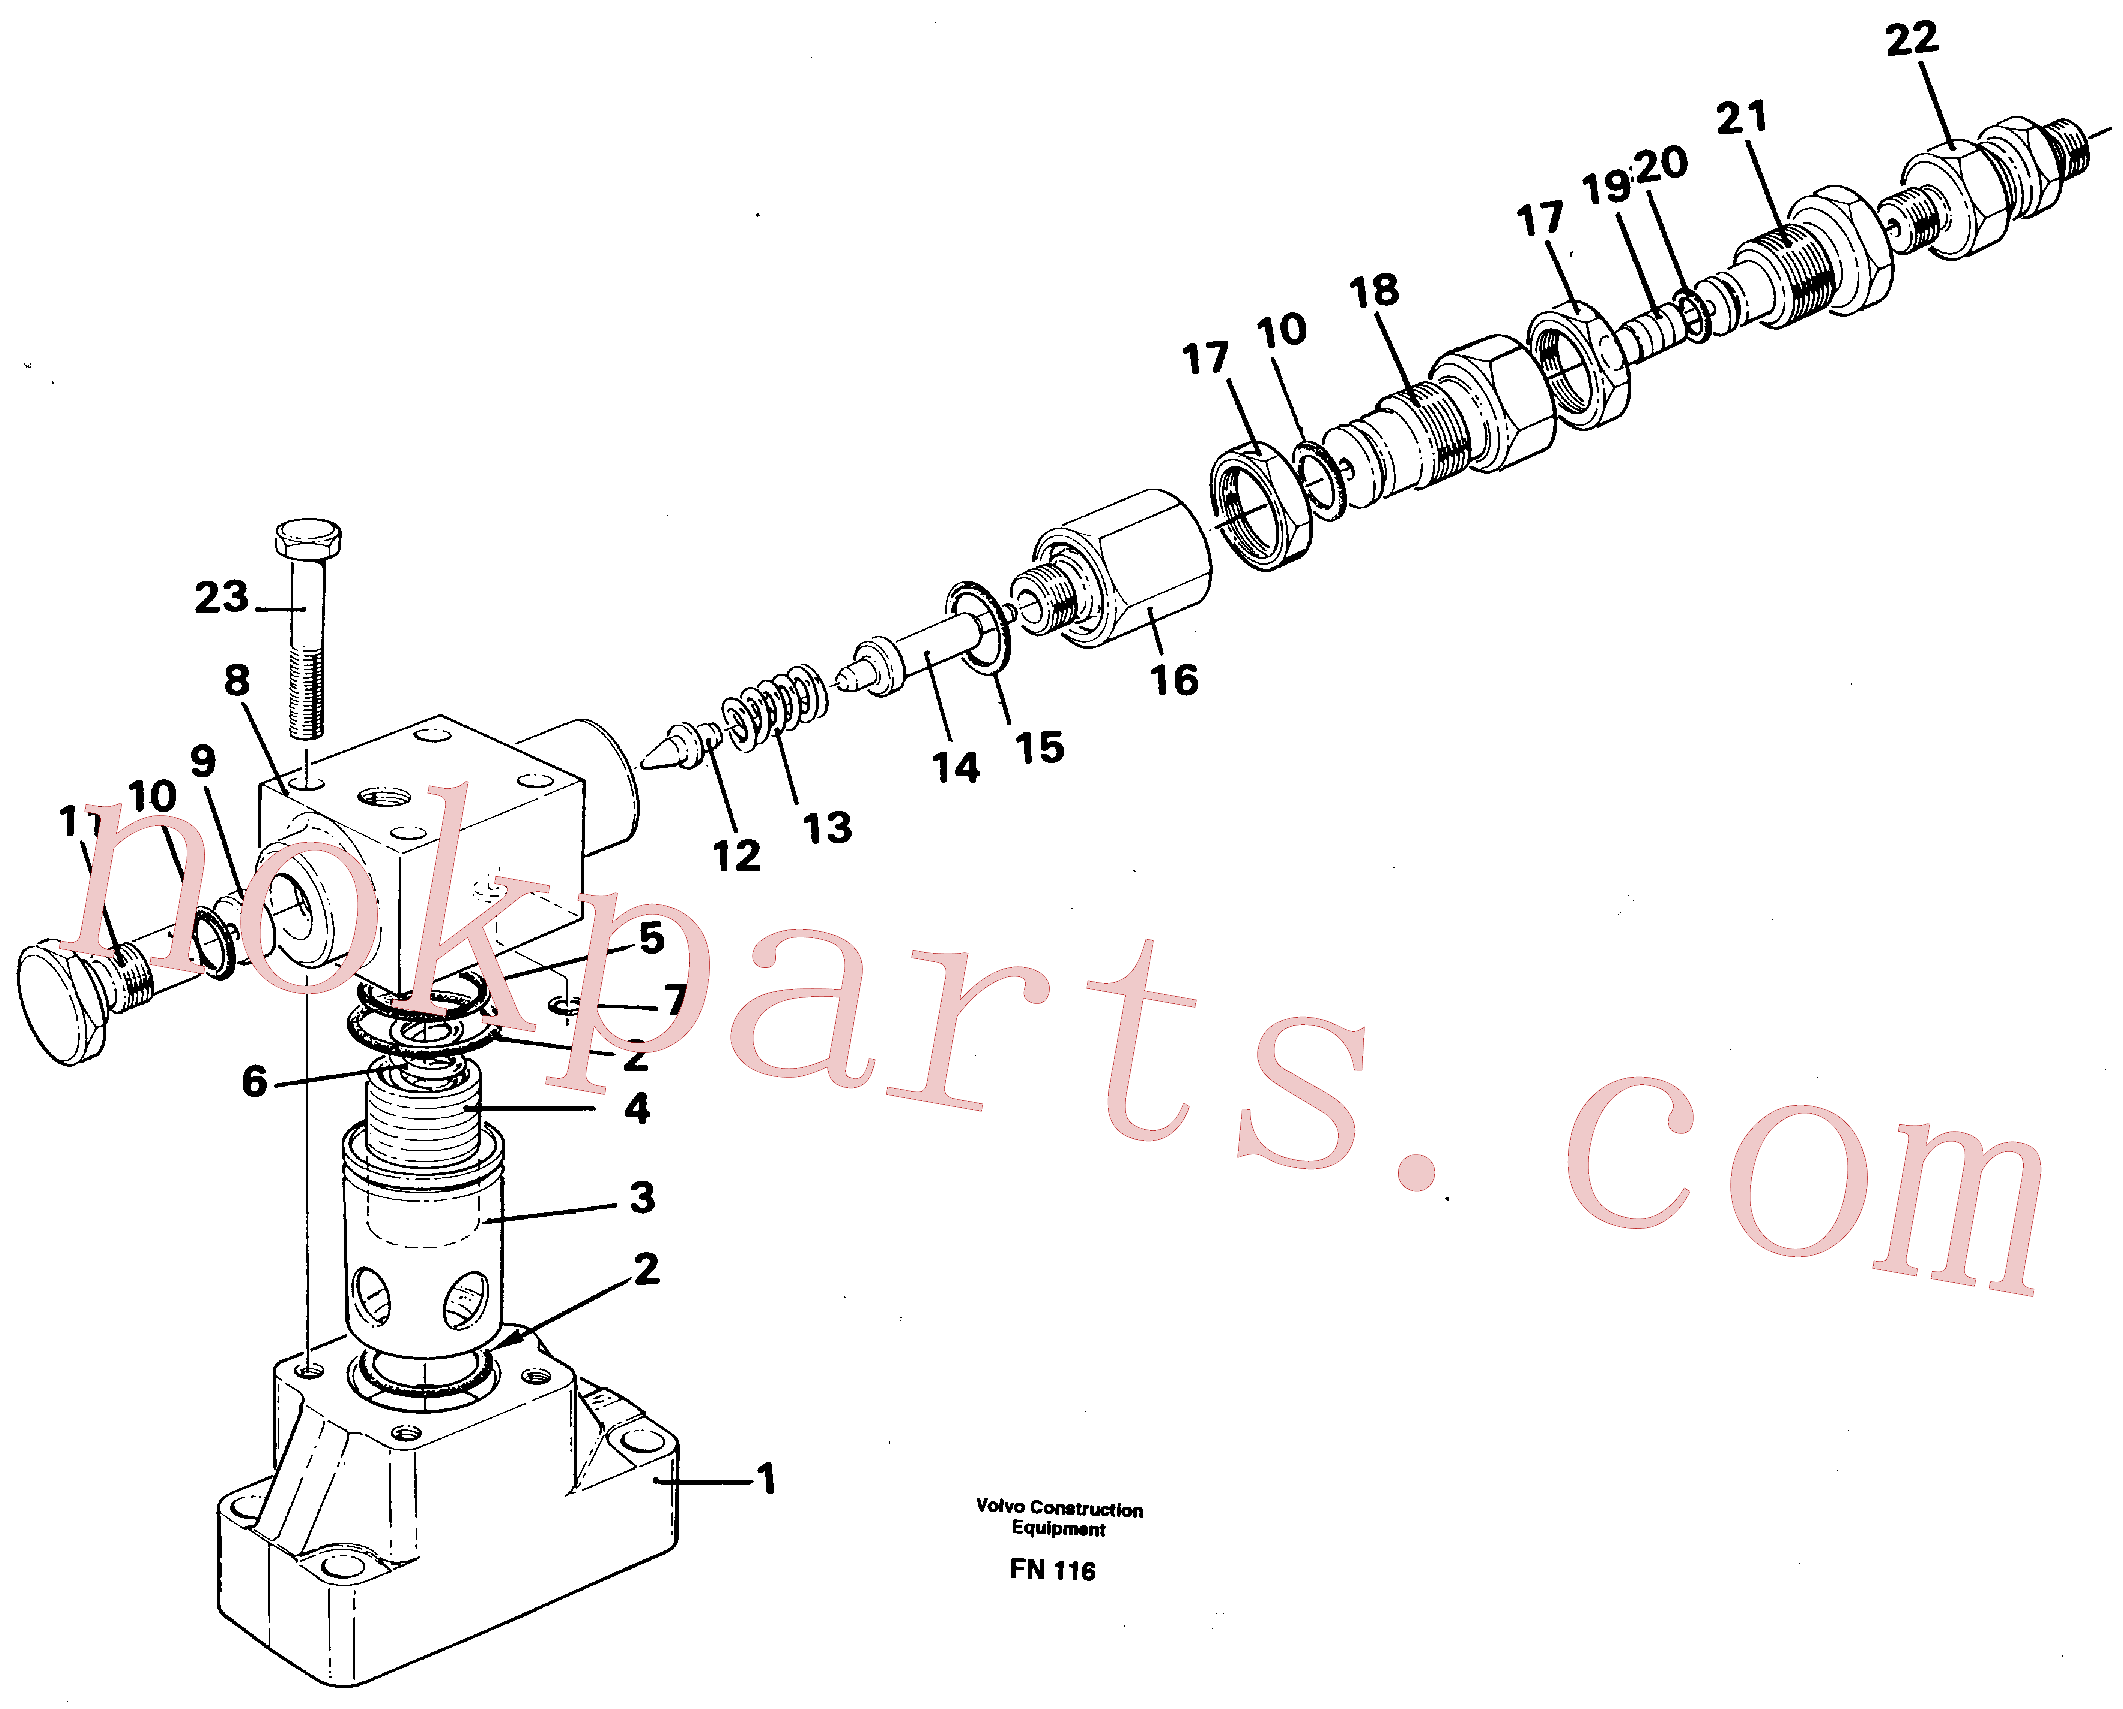 VOE925064 for Volvo Pressure limiting valve(FN116 assembly)